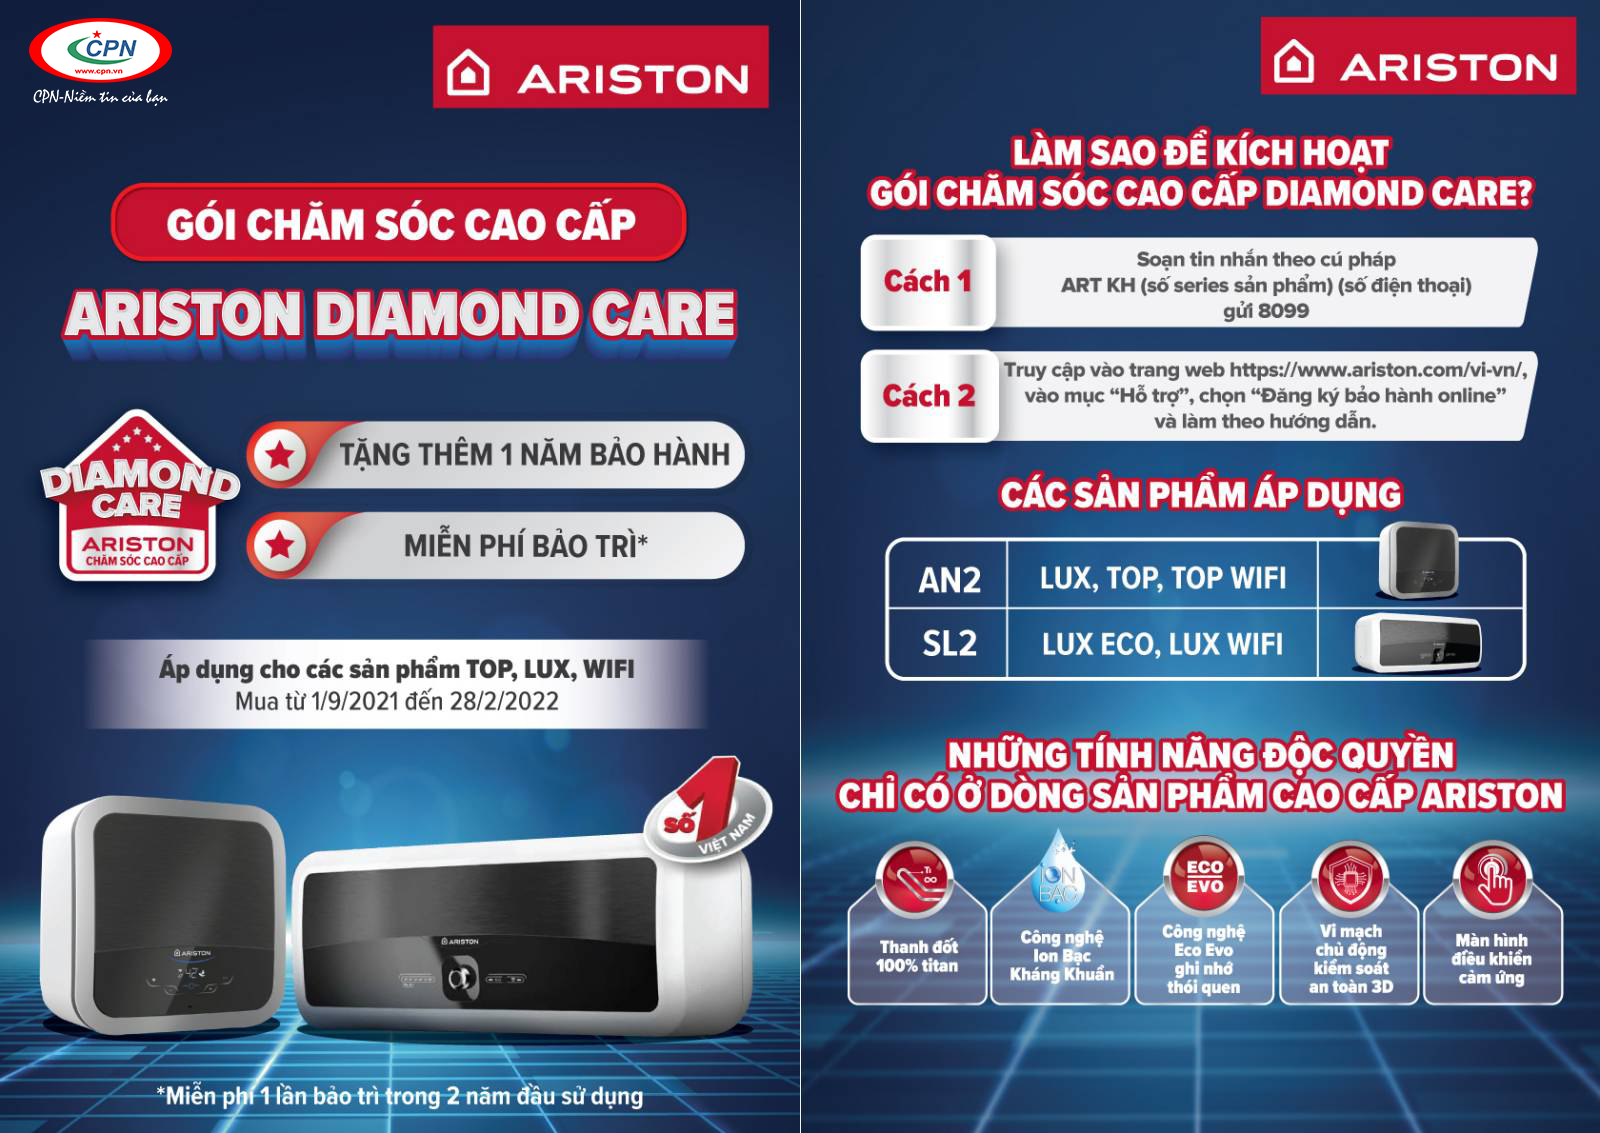 a3-ariston-082021.png